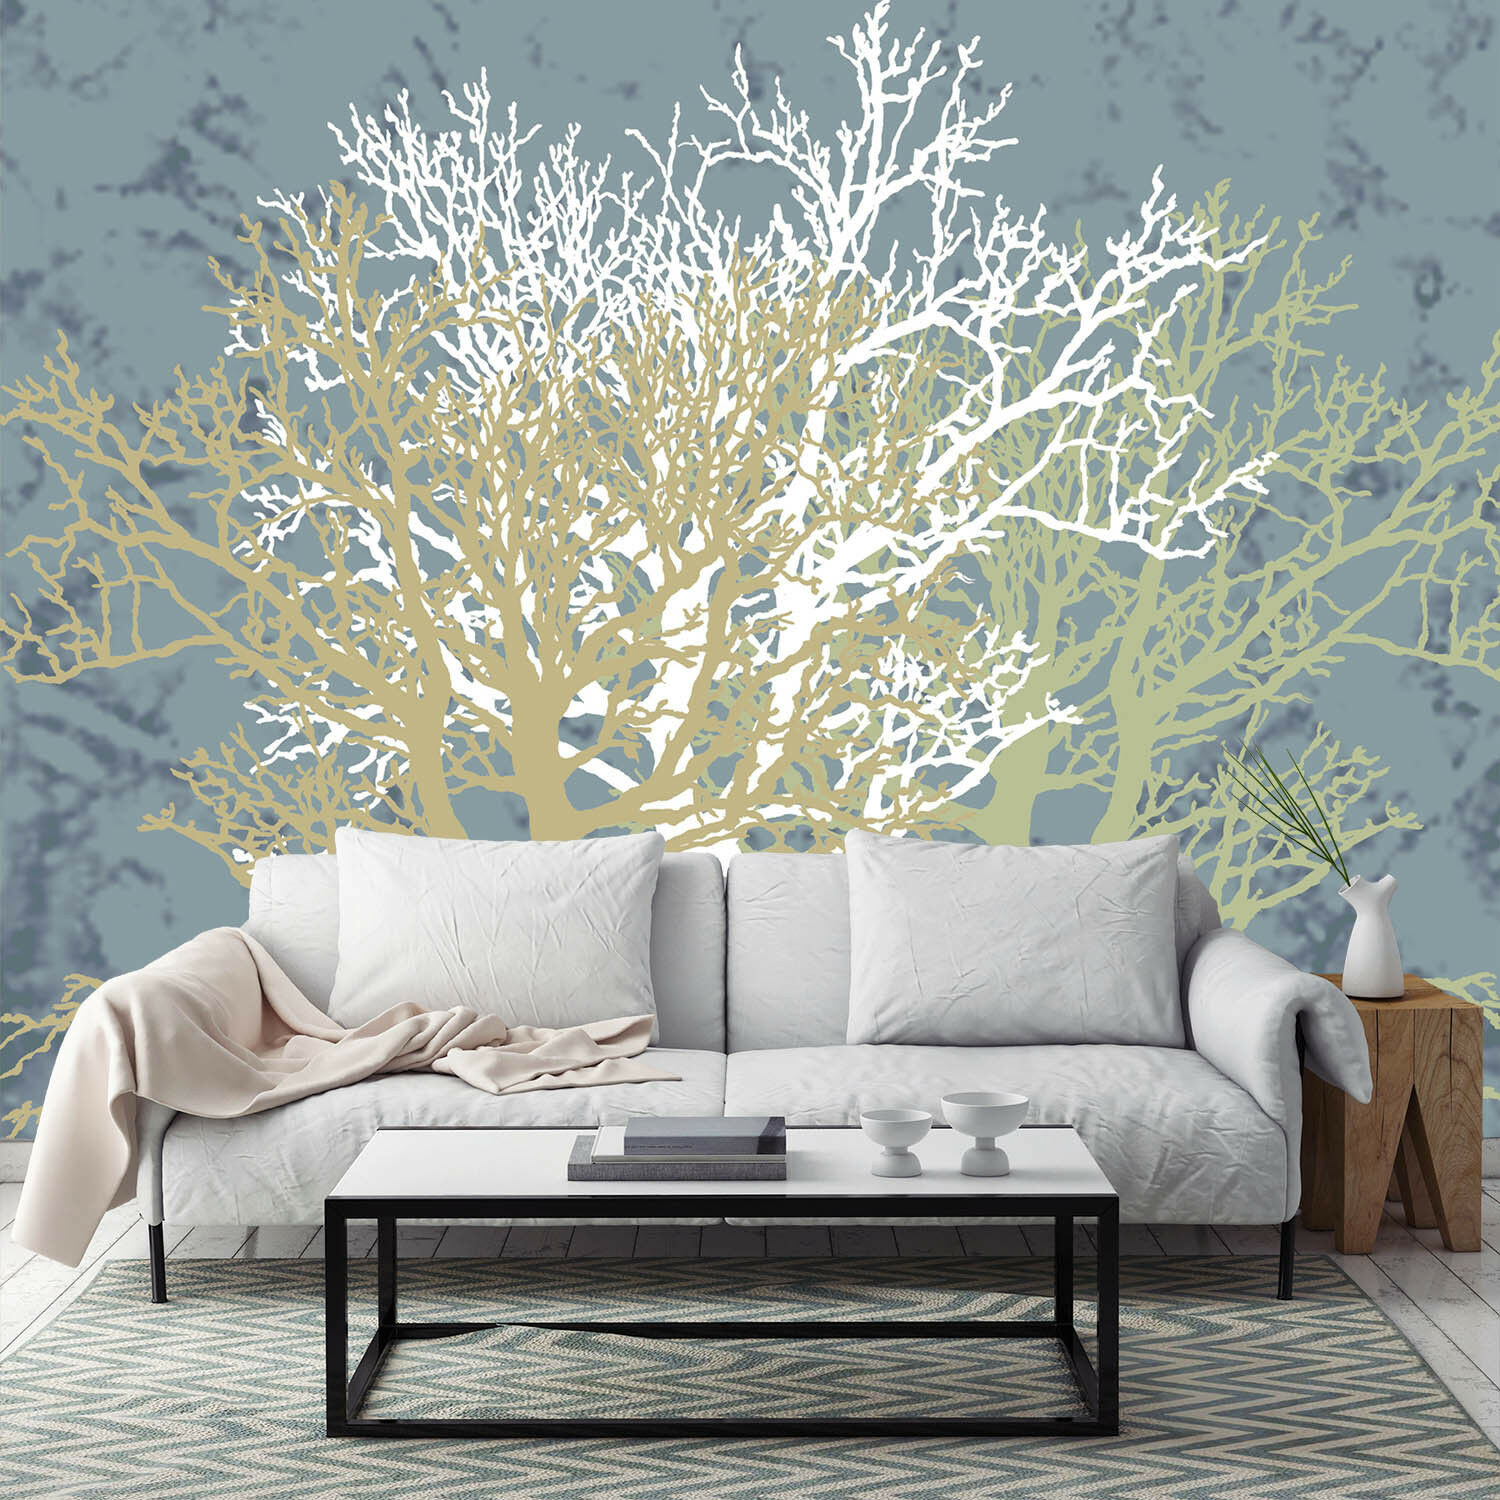 3D Trees Painting 89 Wall Paper Murals Wall Print Wall Wallpaper Mural AU Kyra